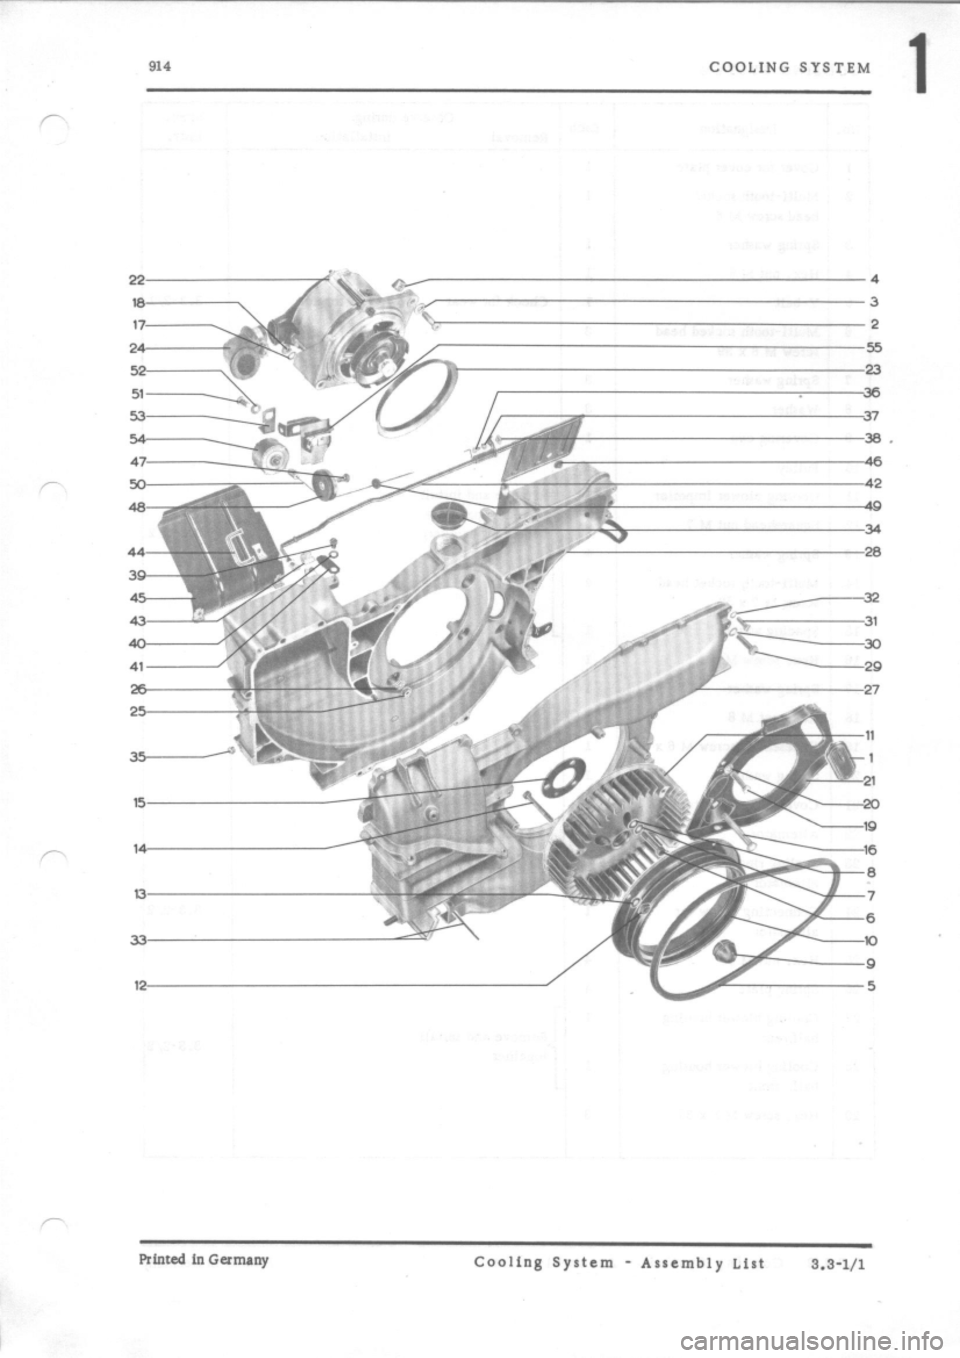 PORSCHE 914 1972 1.G Engine 2 Workshop Manual